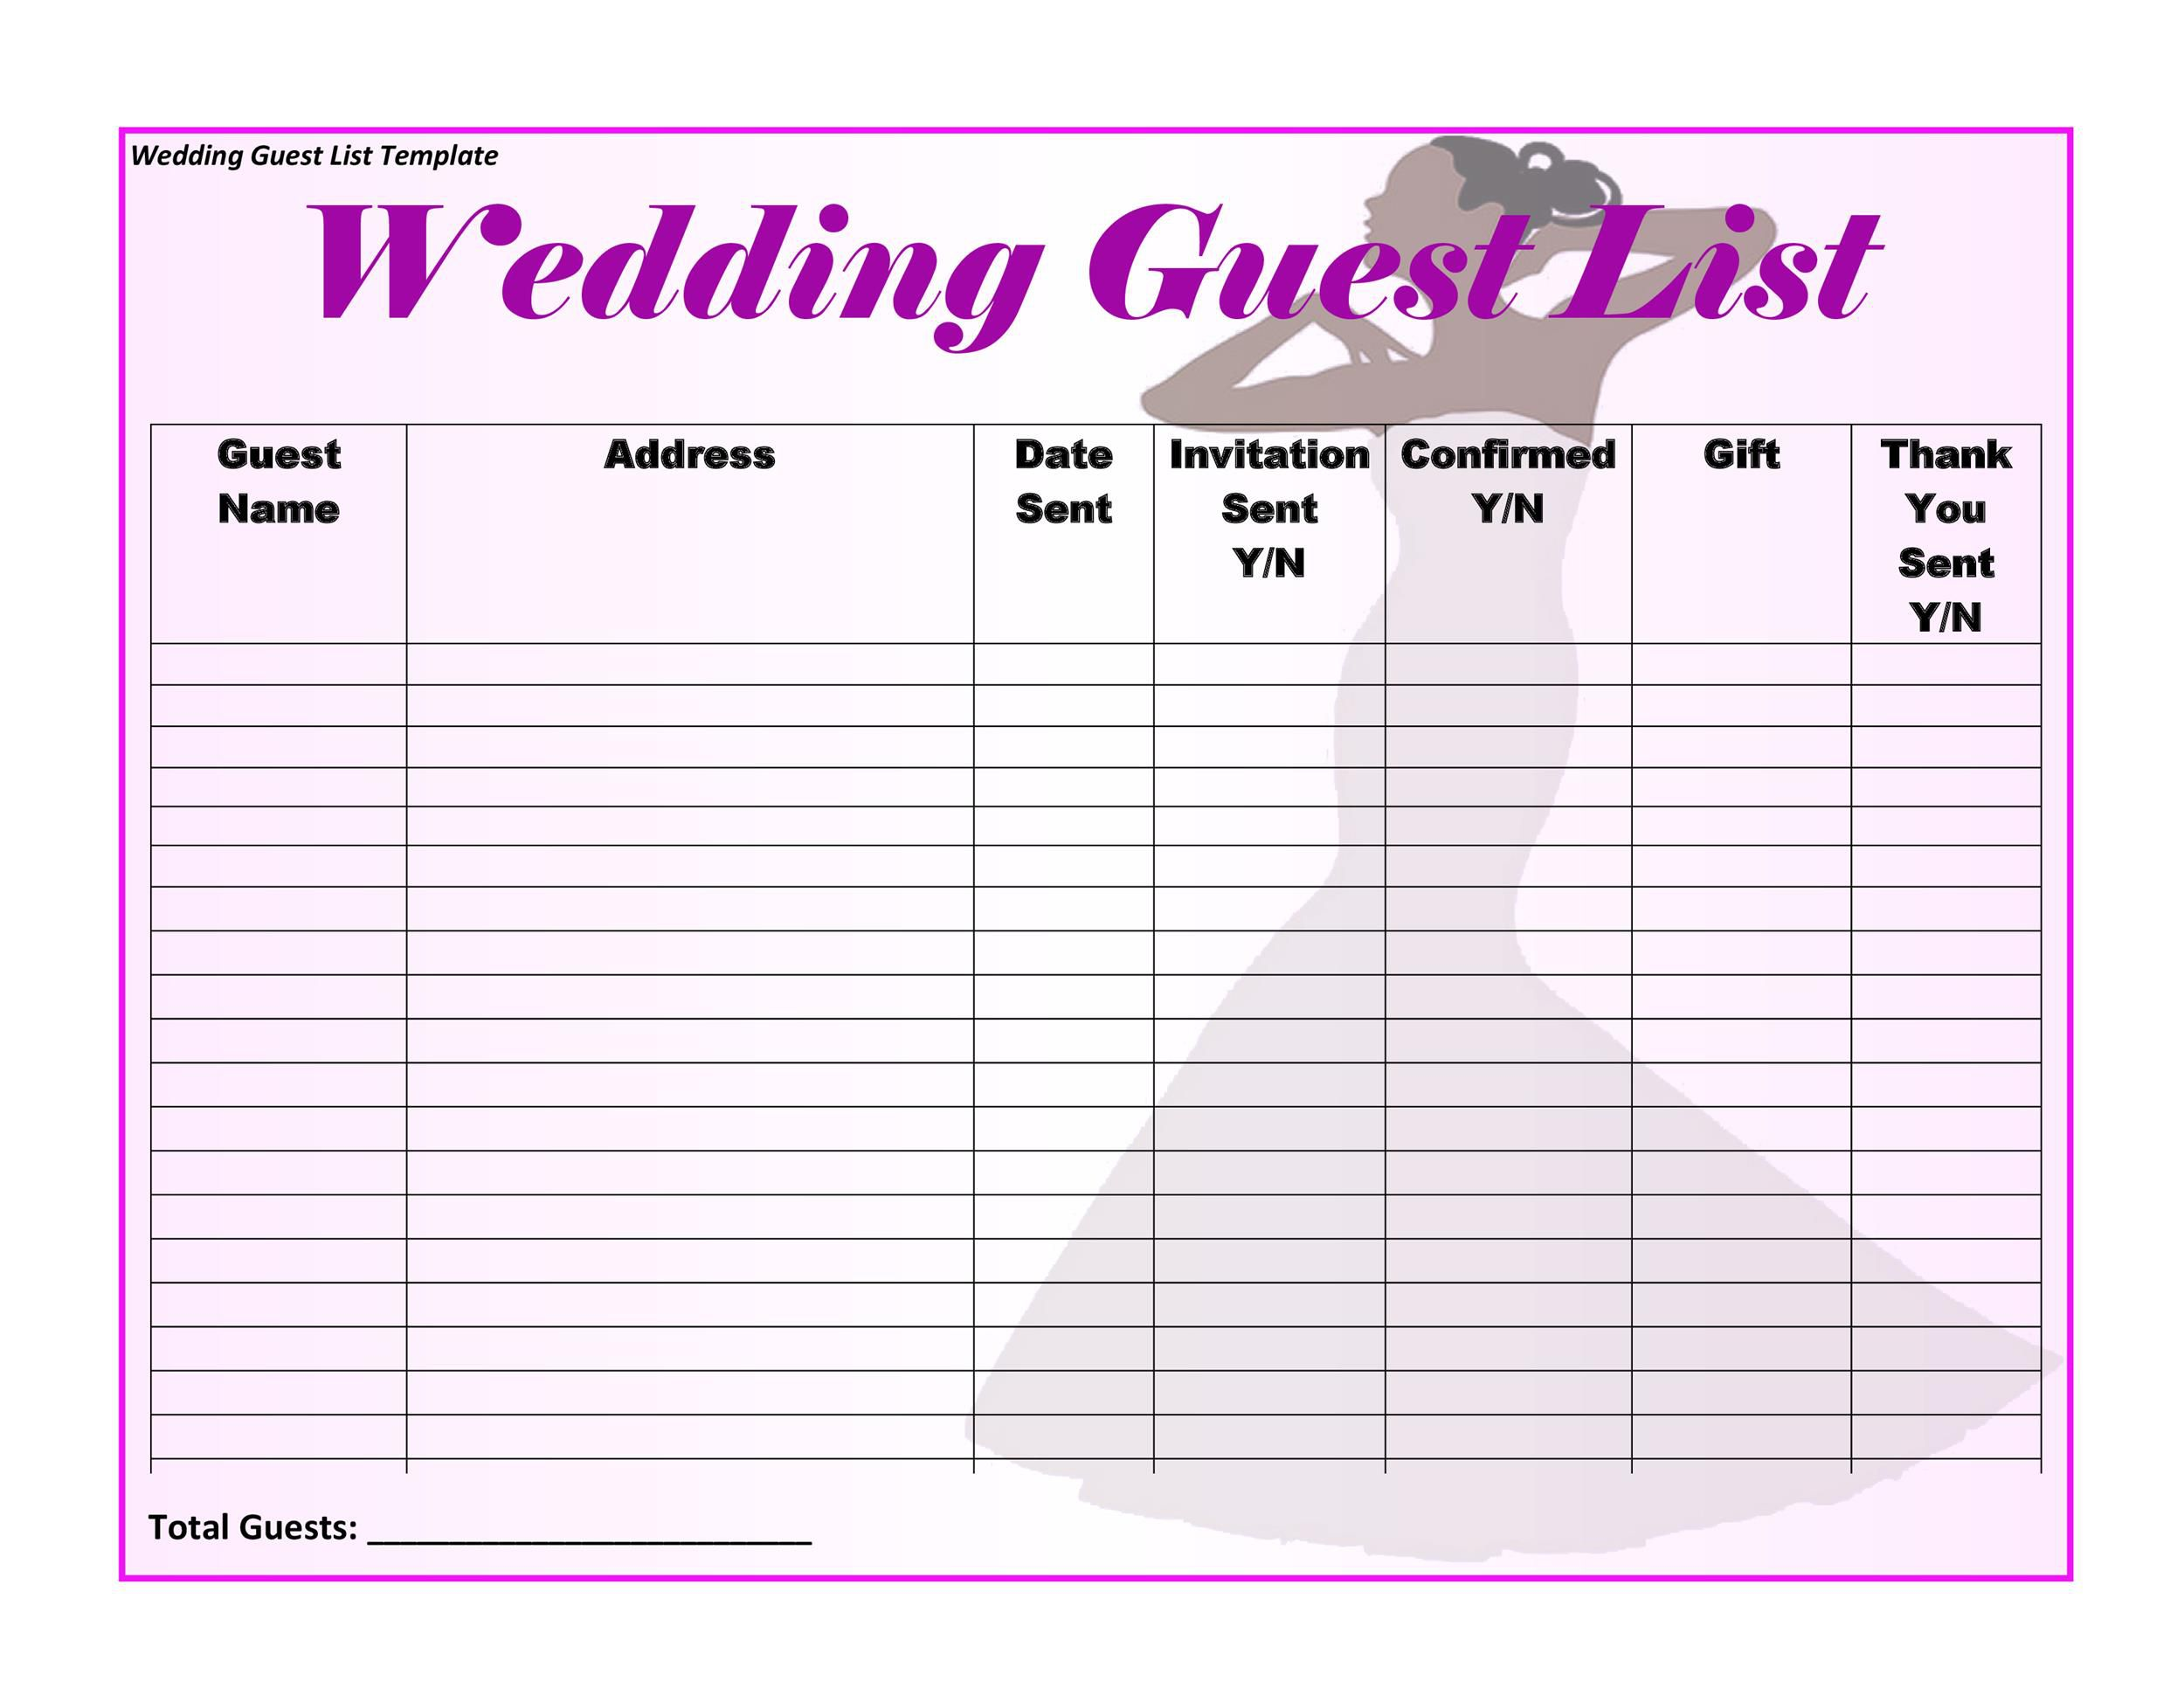 Wedding Guest List Template Excel Addictionary